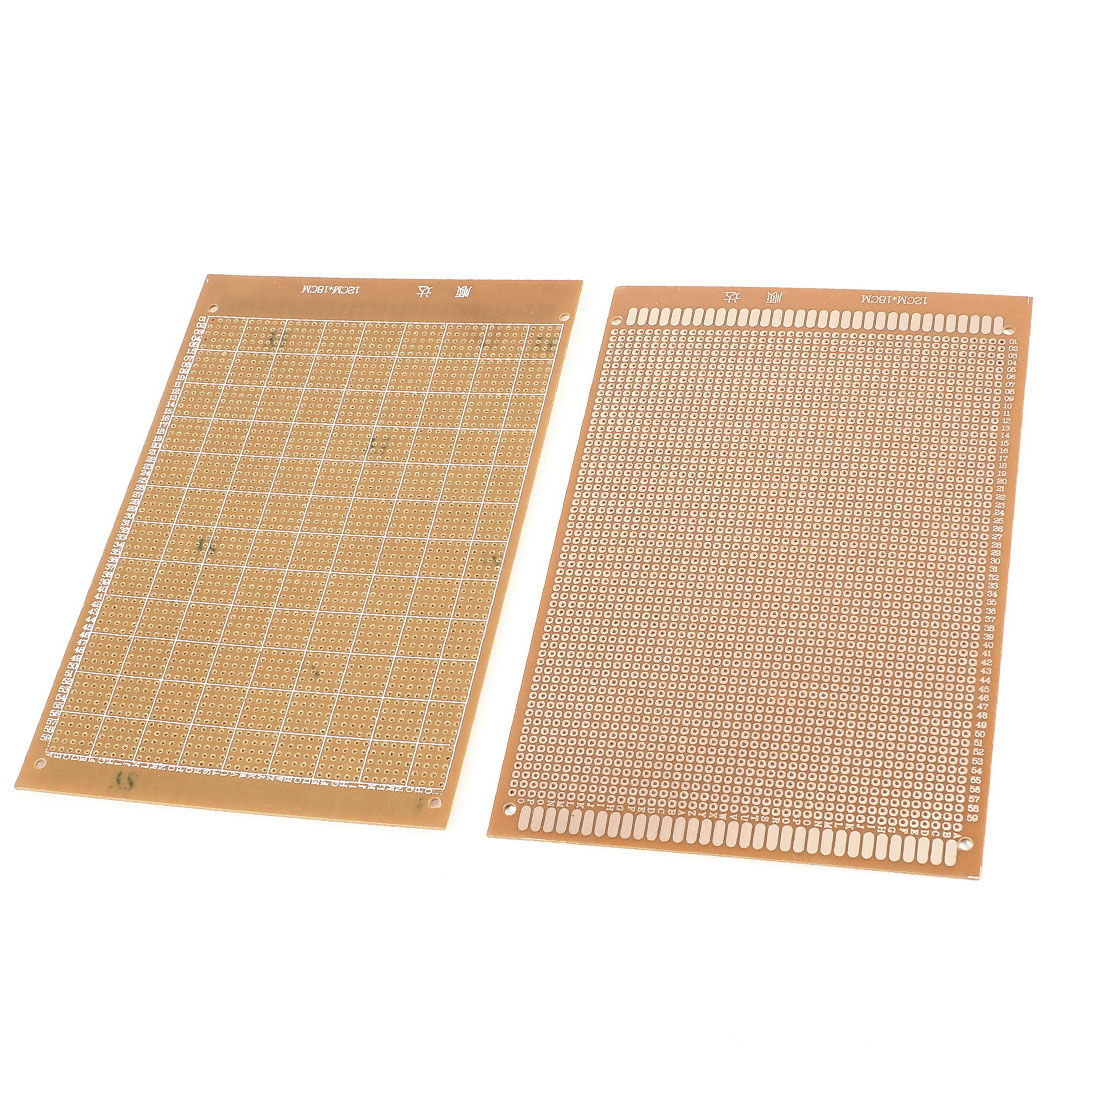 2Pcs 12cm x 18cm Electronic DIY Universal Single Side Prototype Matrix PCB Printed Circuit Board Stripboard